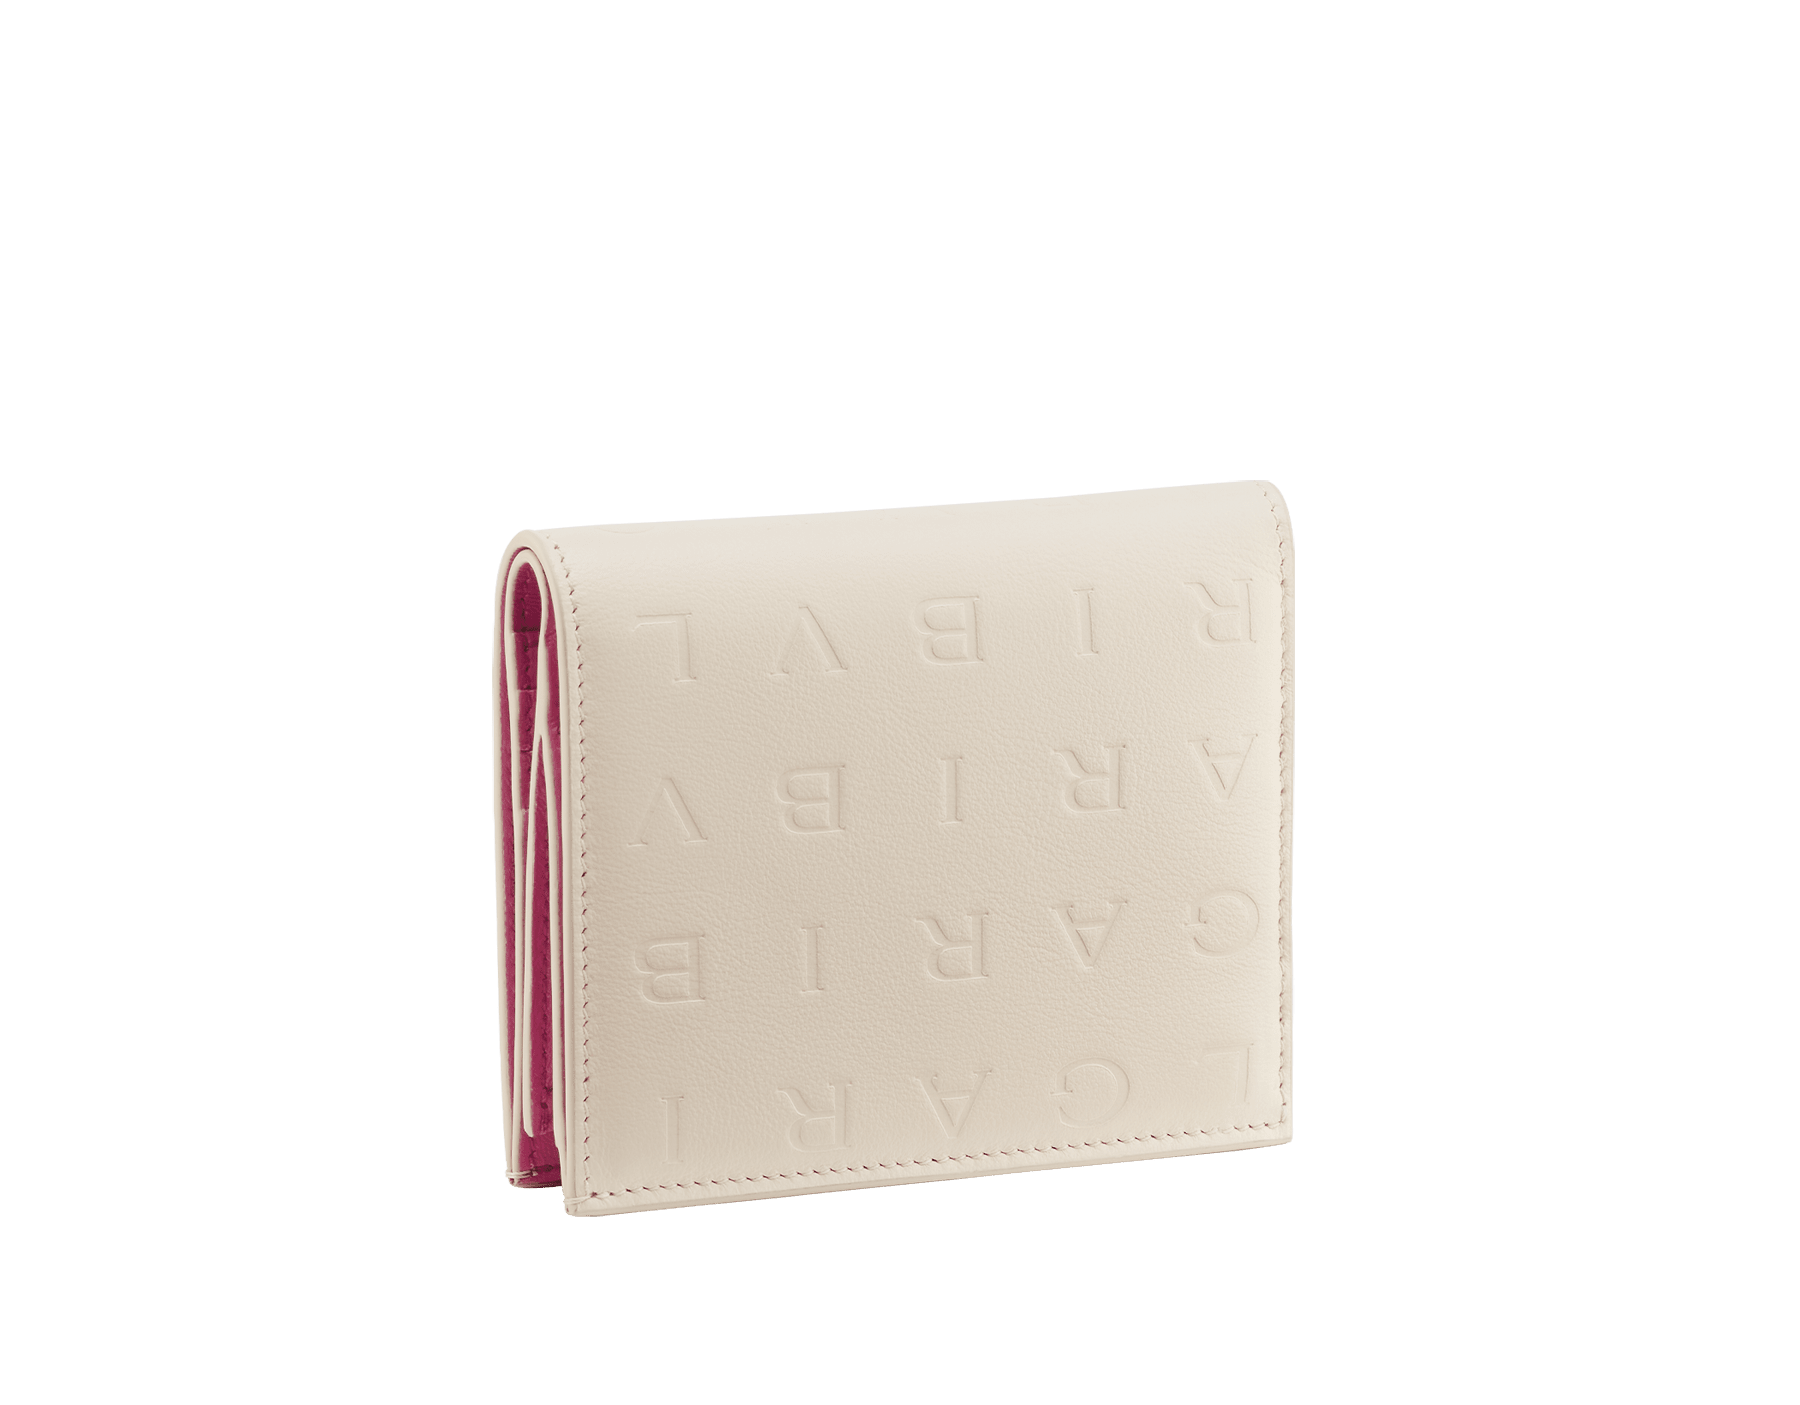 Bvlgari Logo compact wallet in Ivory Opal white calf leather with hot stamped Infinitum Bvlgari logo pattern and plain Pink Spinel nappa leather lining. Light gold-plated brass hardware BVL-COMPACTWLT image 3